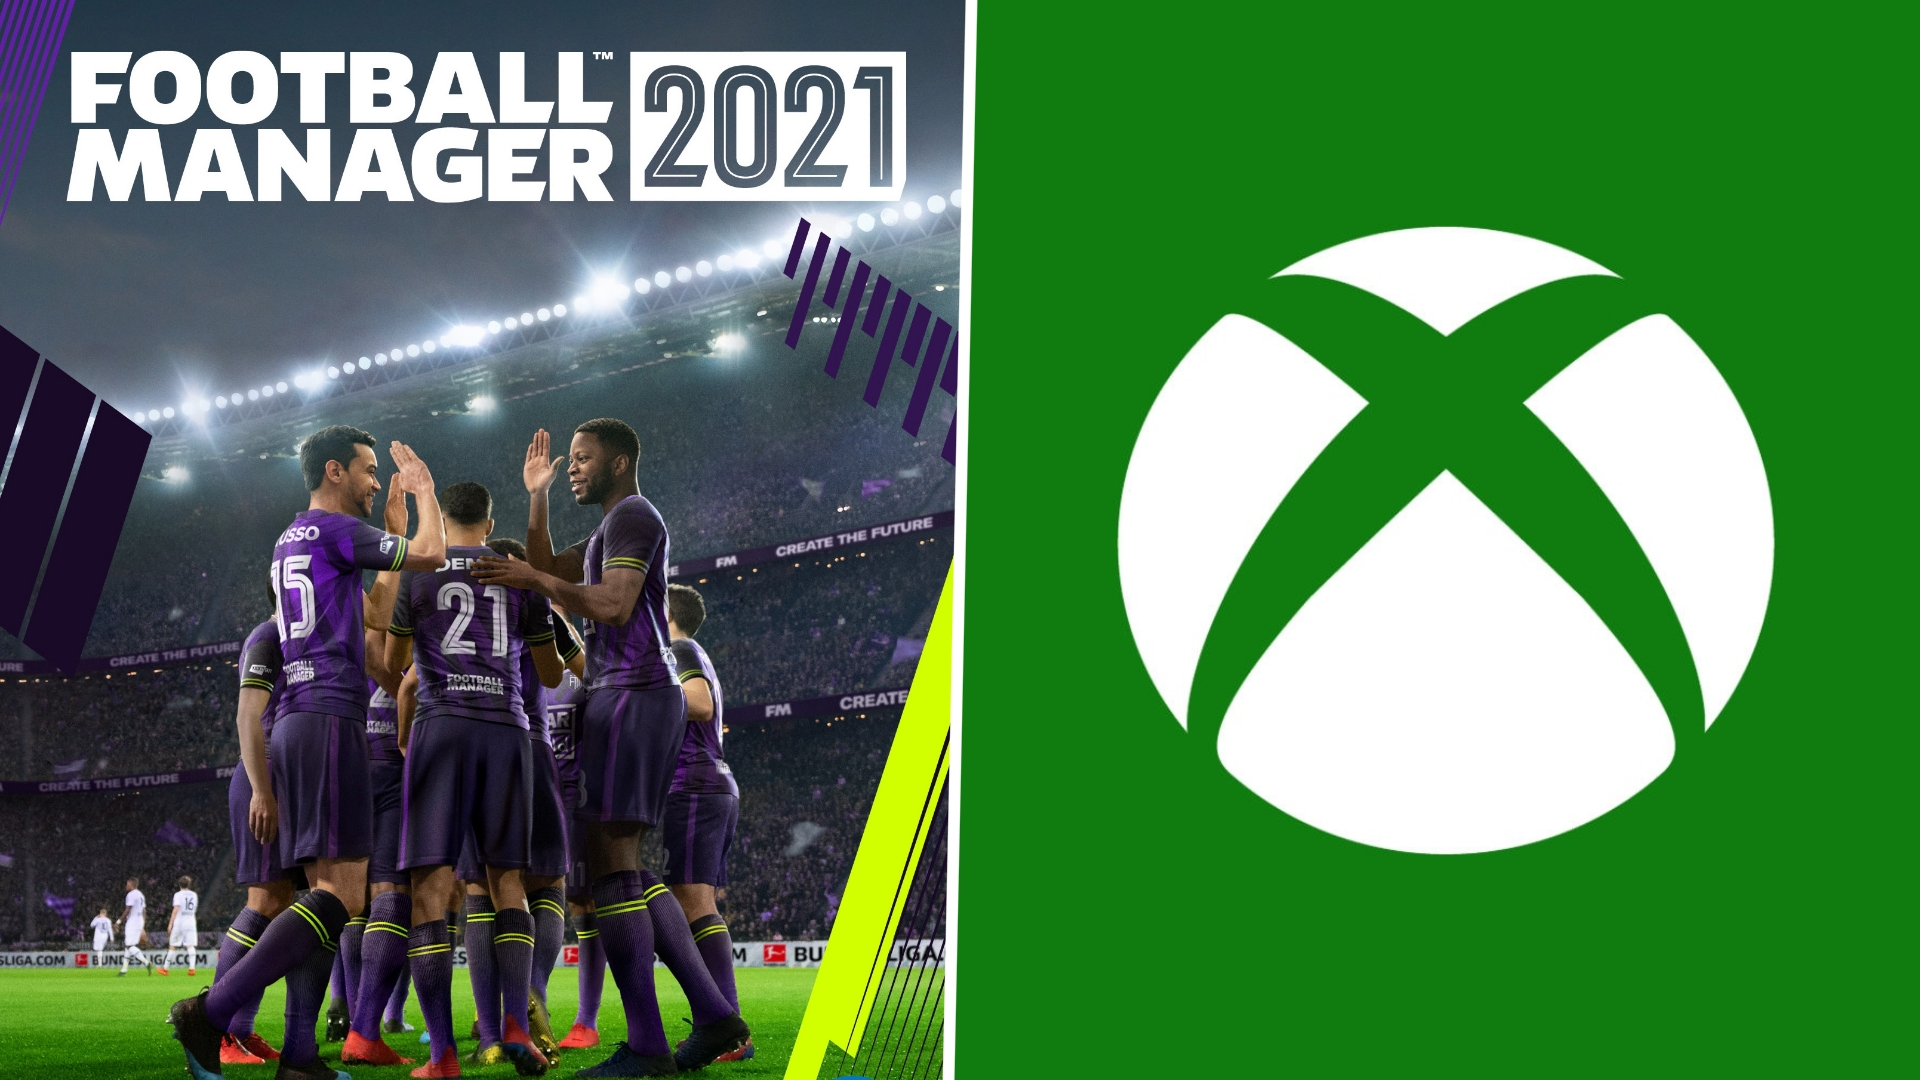 Football Manager returns to Xbox as FM21 release date announced | Goal.com